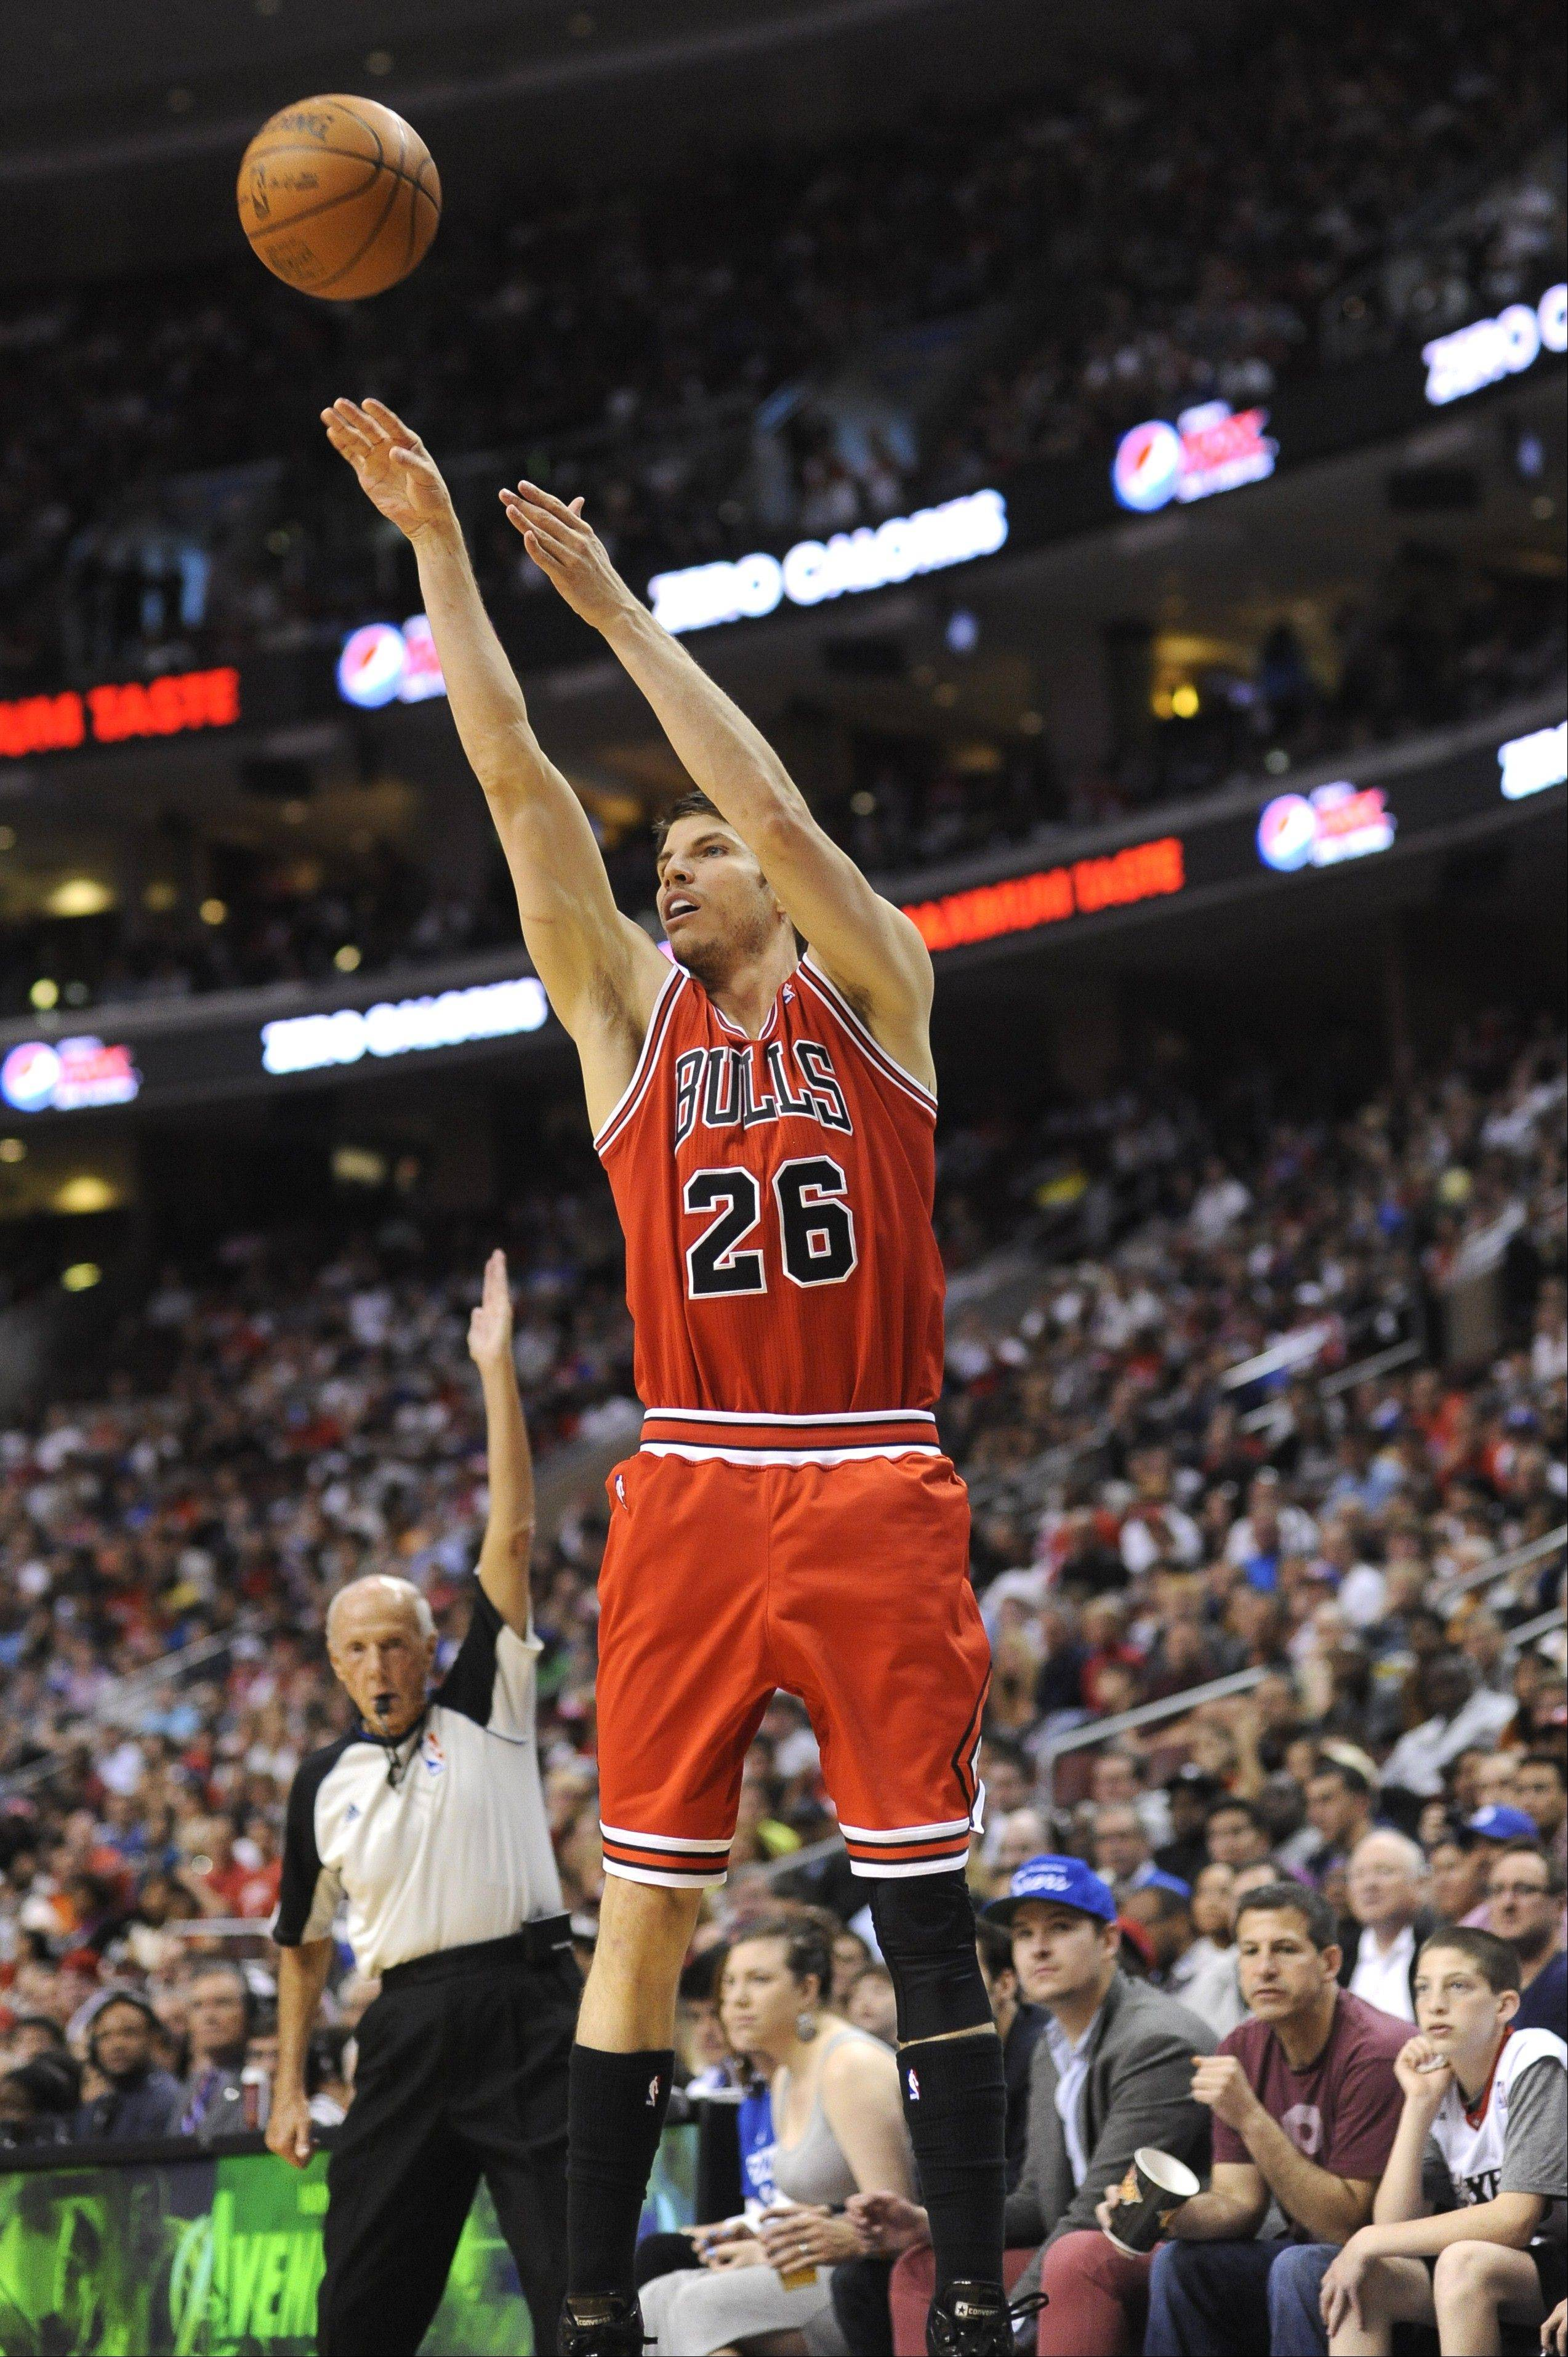 Bulls fans will recall sharpshooter Kyle Korver firing up 3-pointers before he signed with the Hawks as a free agent. Korver owns the NBA record of 102 straight games � and counting � making at least one 3-point basket.